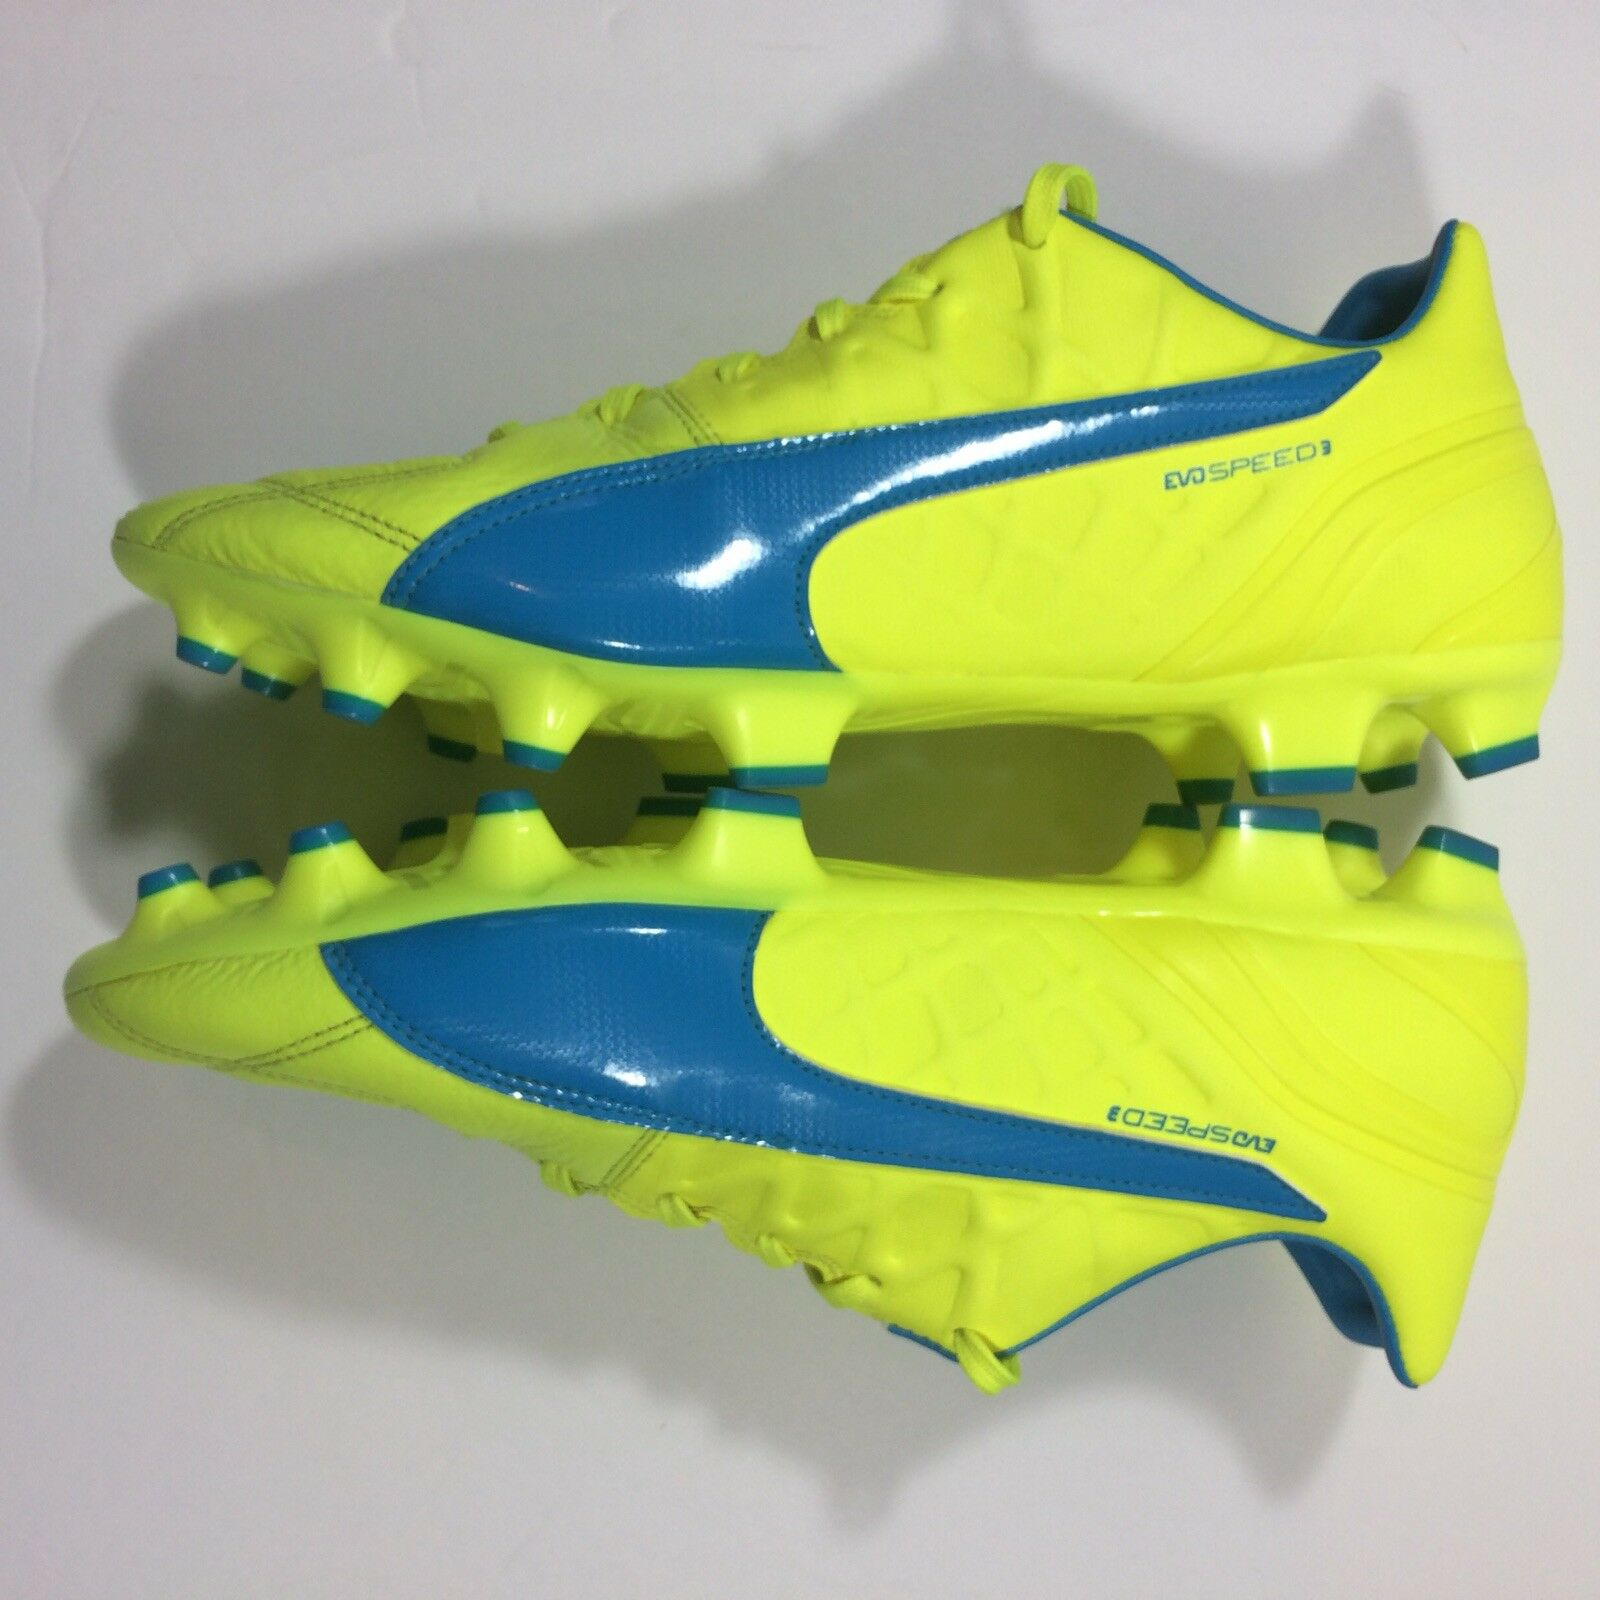 NWB Puma Evospeed 3.4 Lth Firm Ground Football/Soccer Cleats Cleats Cleats  Herren 10.5 Gelb cc4356